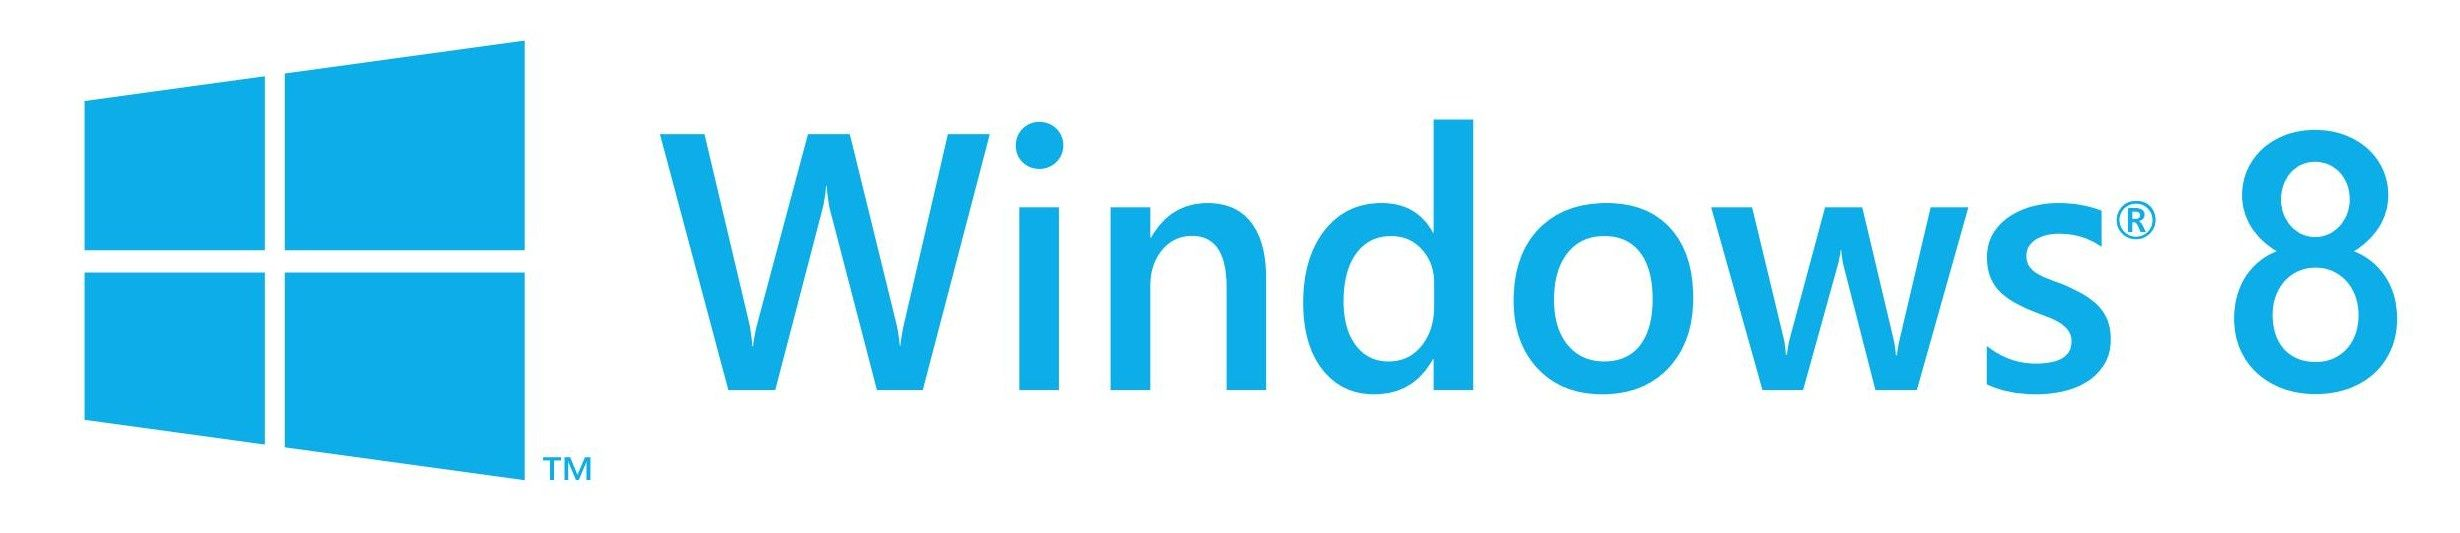 2460x533 Windows 8 Logo Vector [Eps File] Software And Application Logos